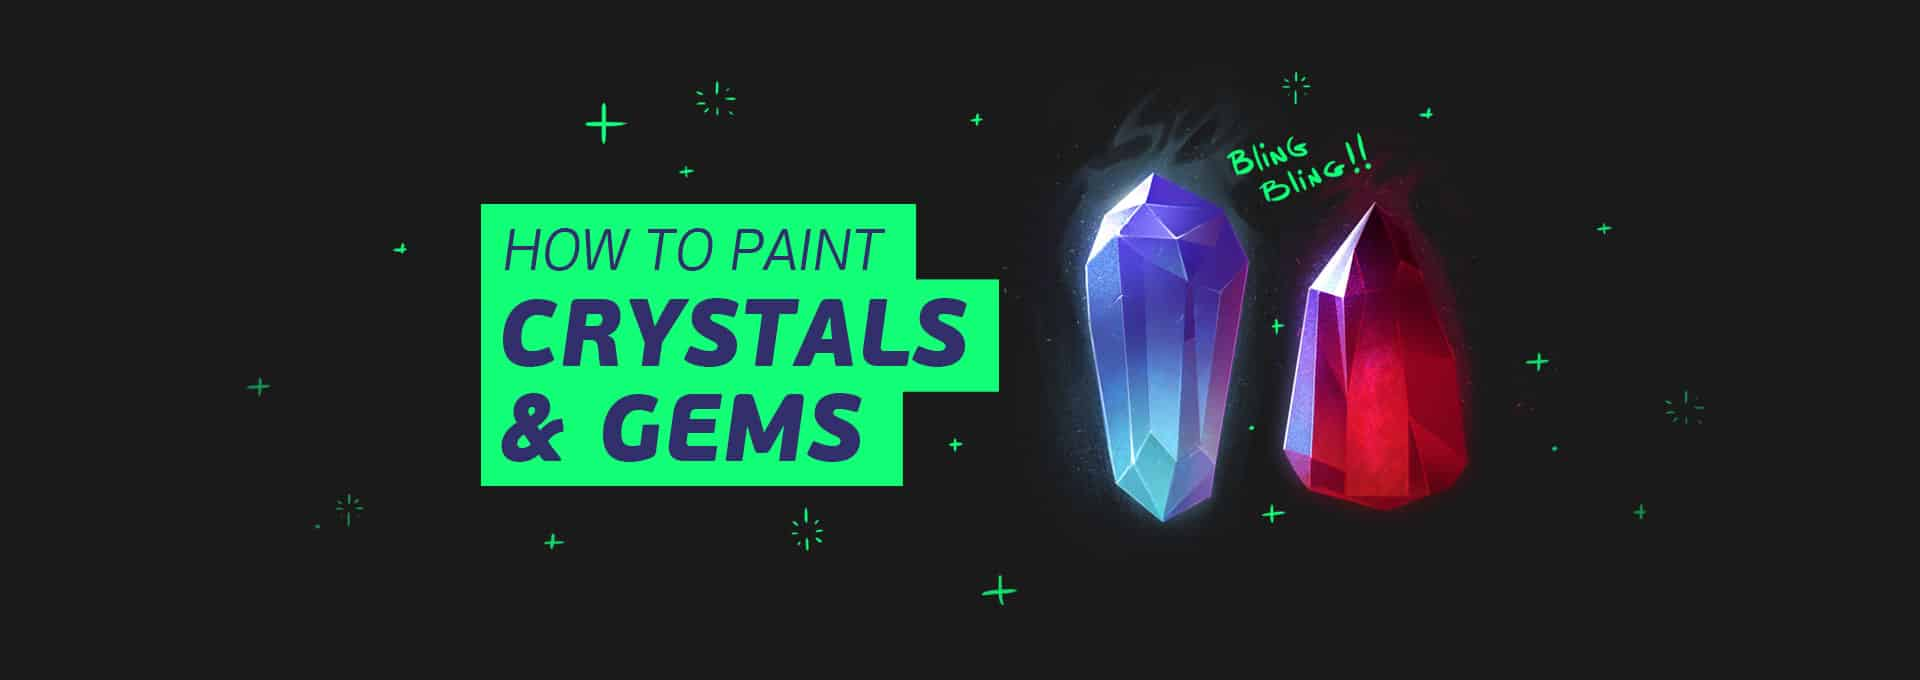 Painting Crystals and Gems